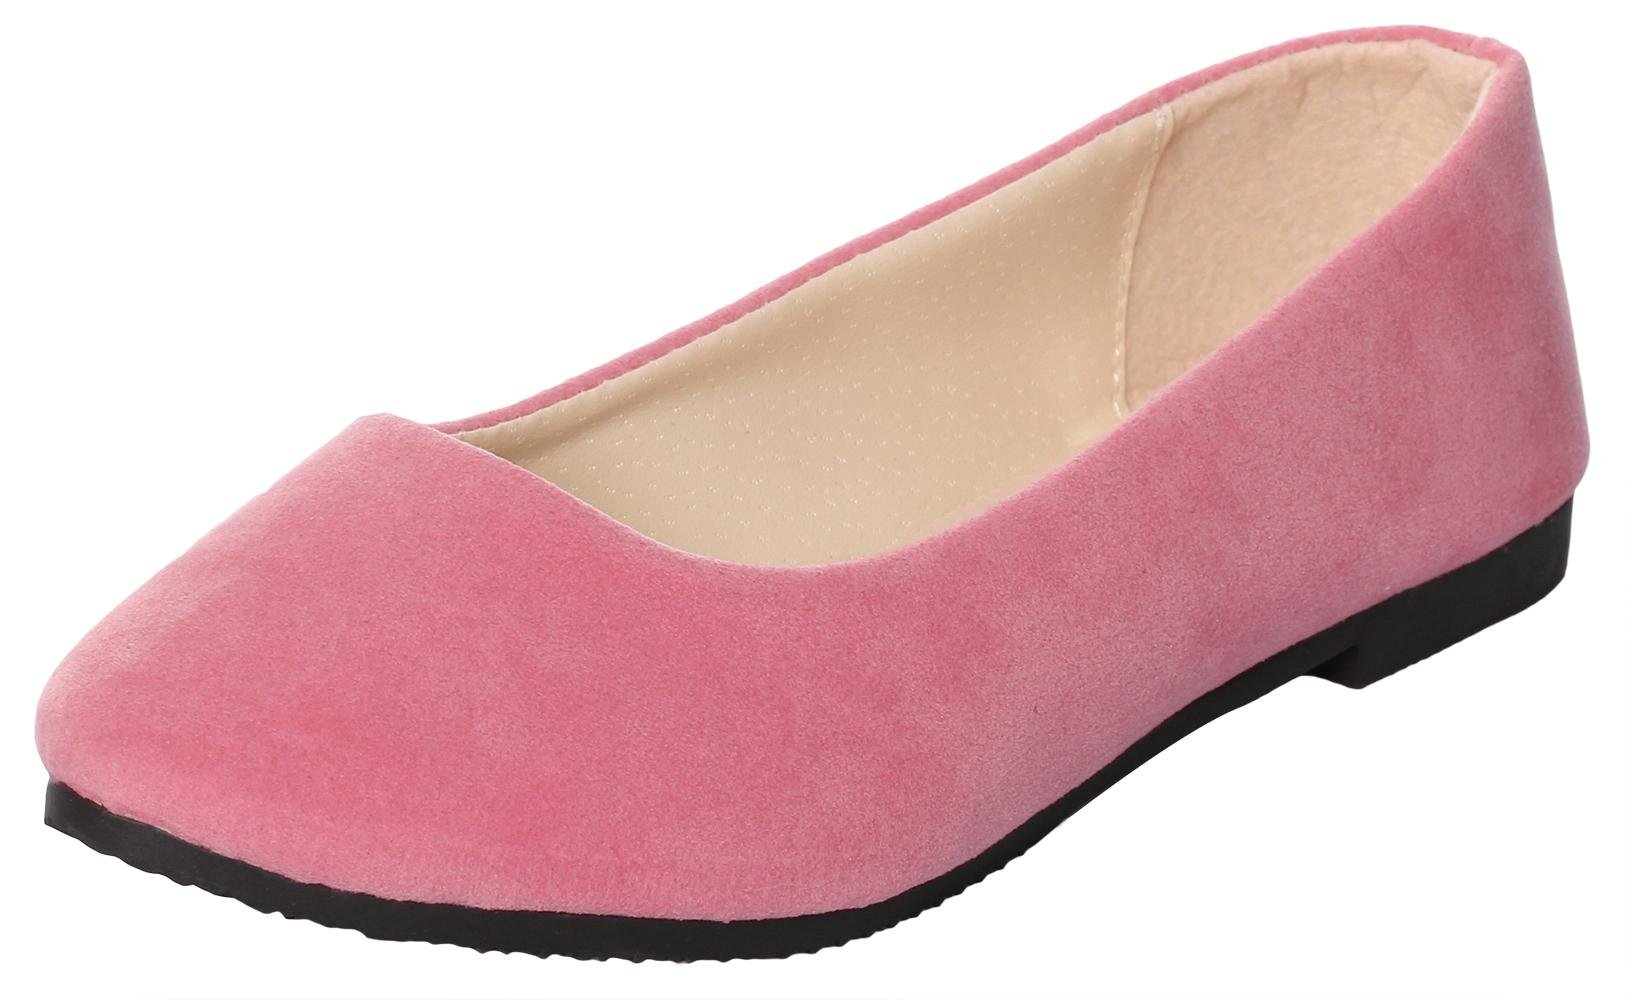 UJoowalk Womens Casual Simple Comfort Solid Color Pointed Toe Suede Leather Ballet Walking Slip on Flat Shoes (9 B(M) US, Matte Pink)